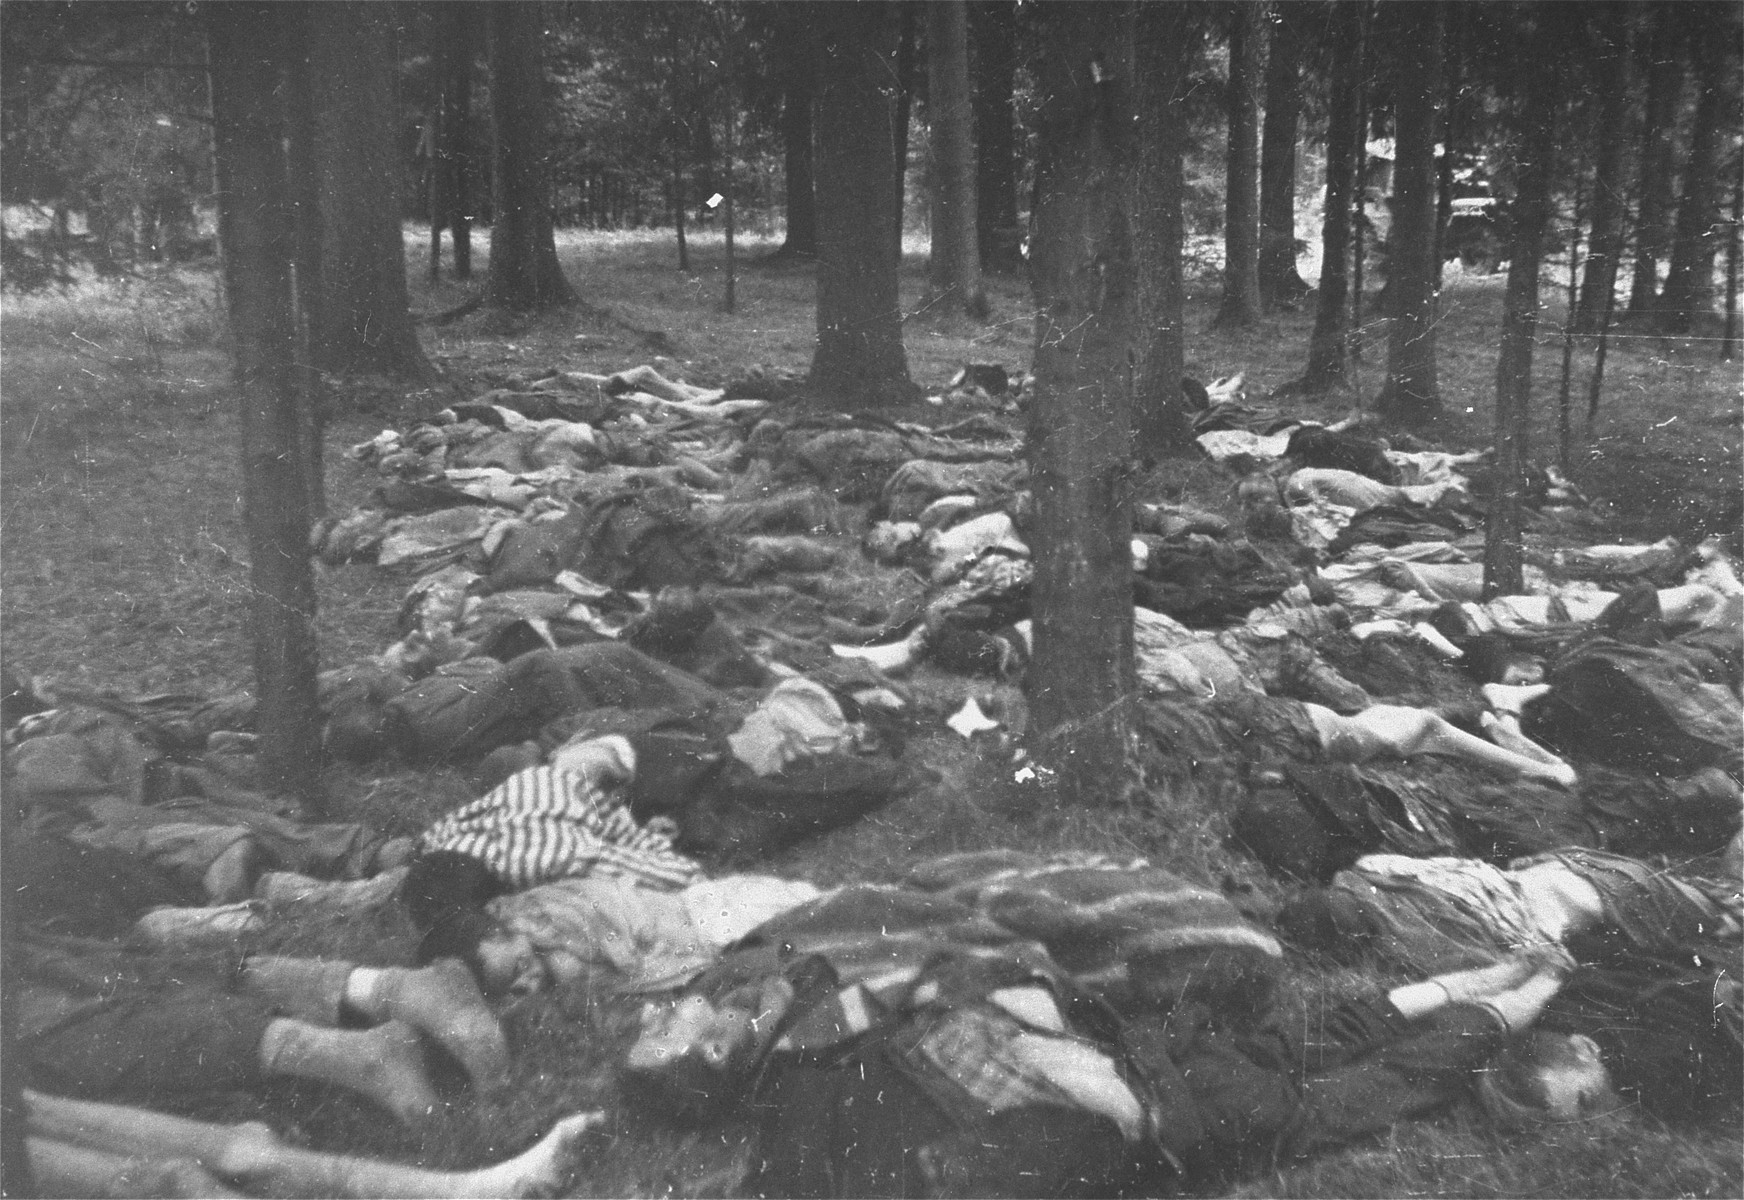 The bodies of executed prisoners in Gunskirchen.